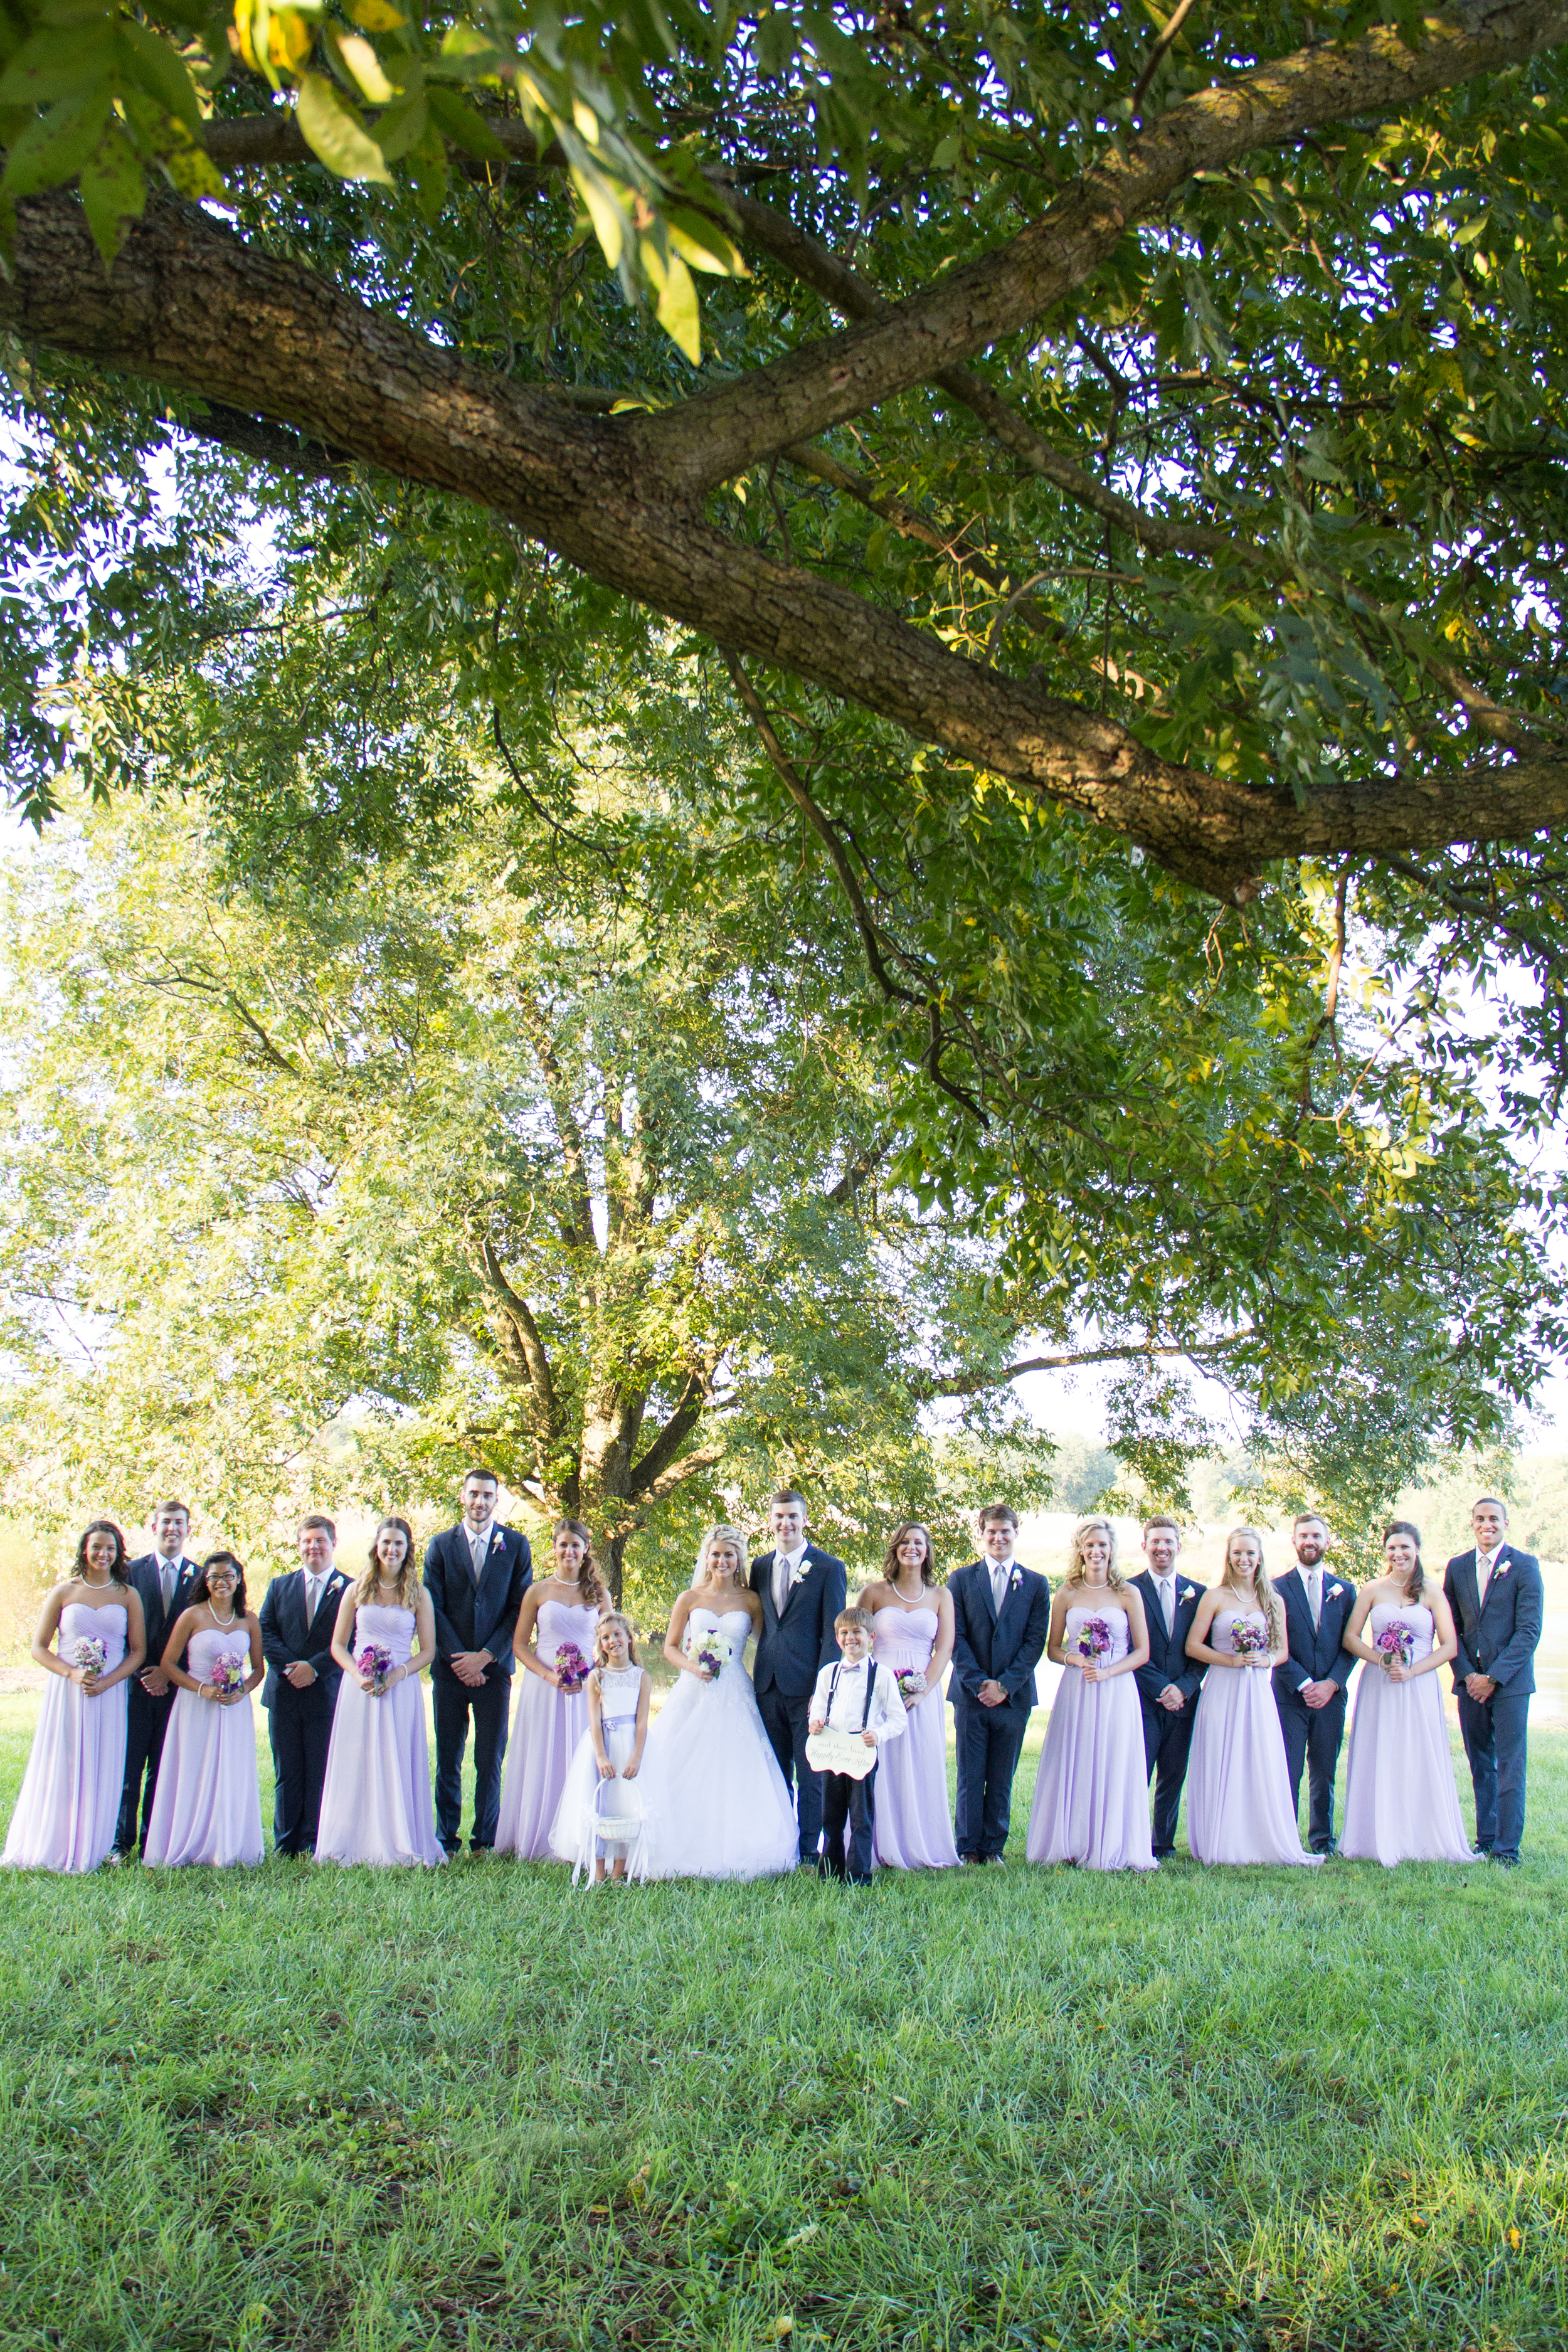 Not only are Morgan & Jeremy so cute, their entire wedding party is!